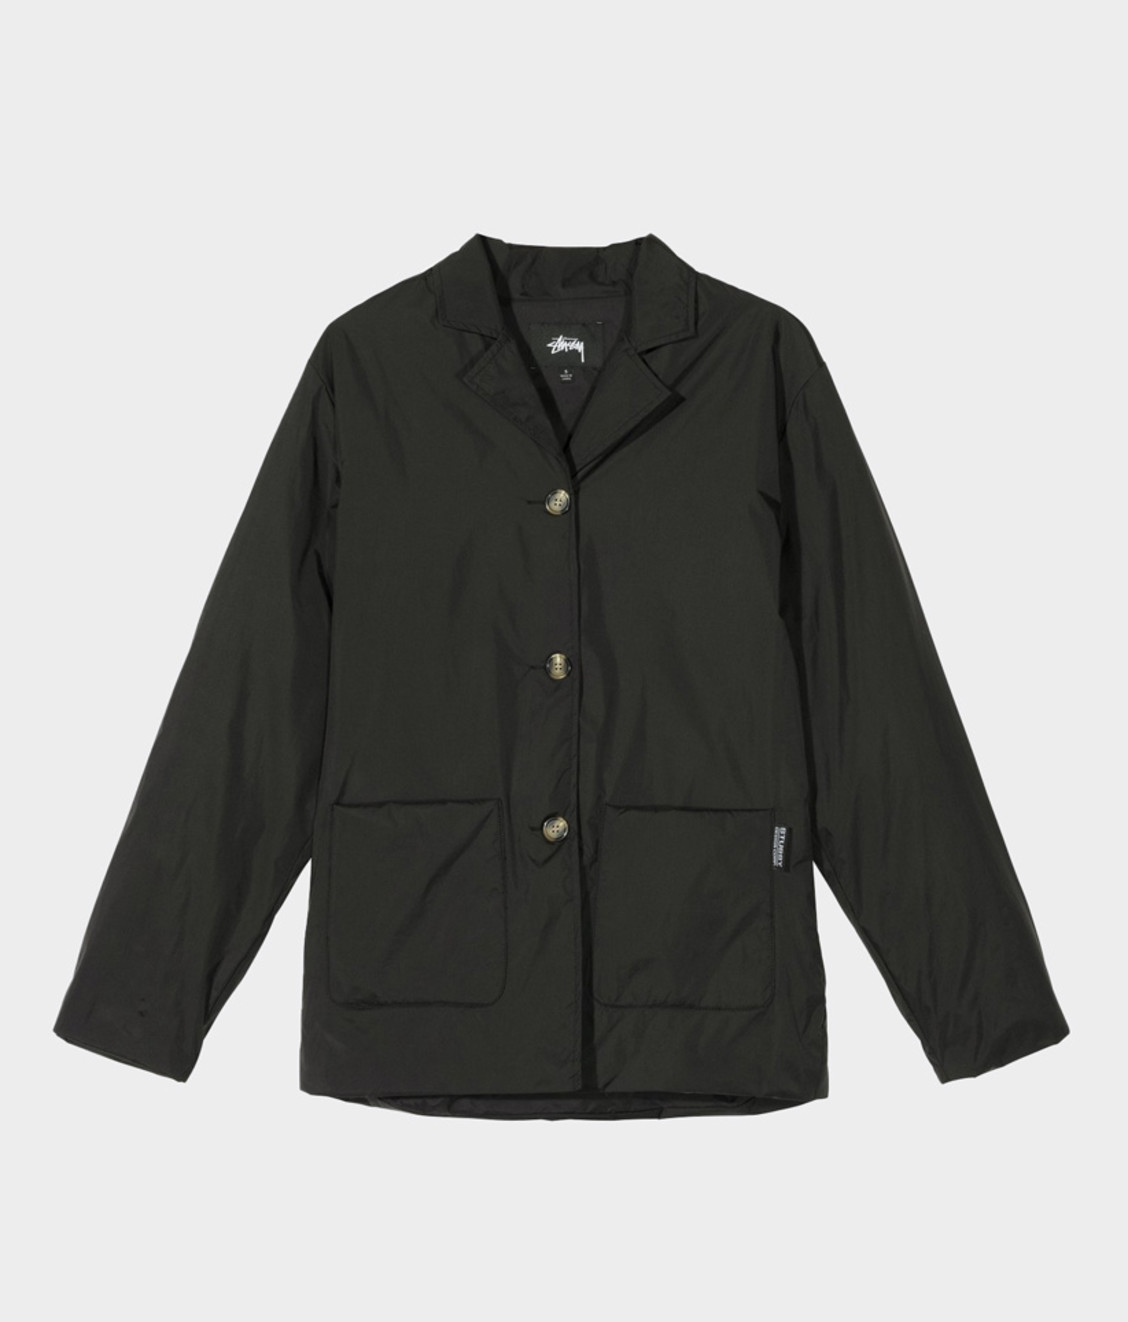 Stussy Stussy Light Fill Nylon Sport Jacket Black